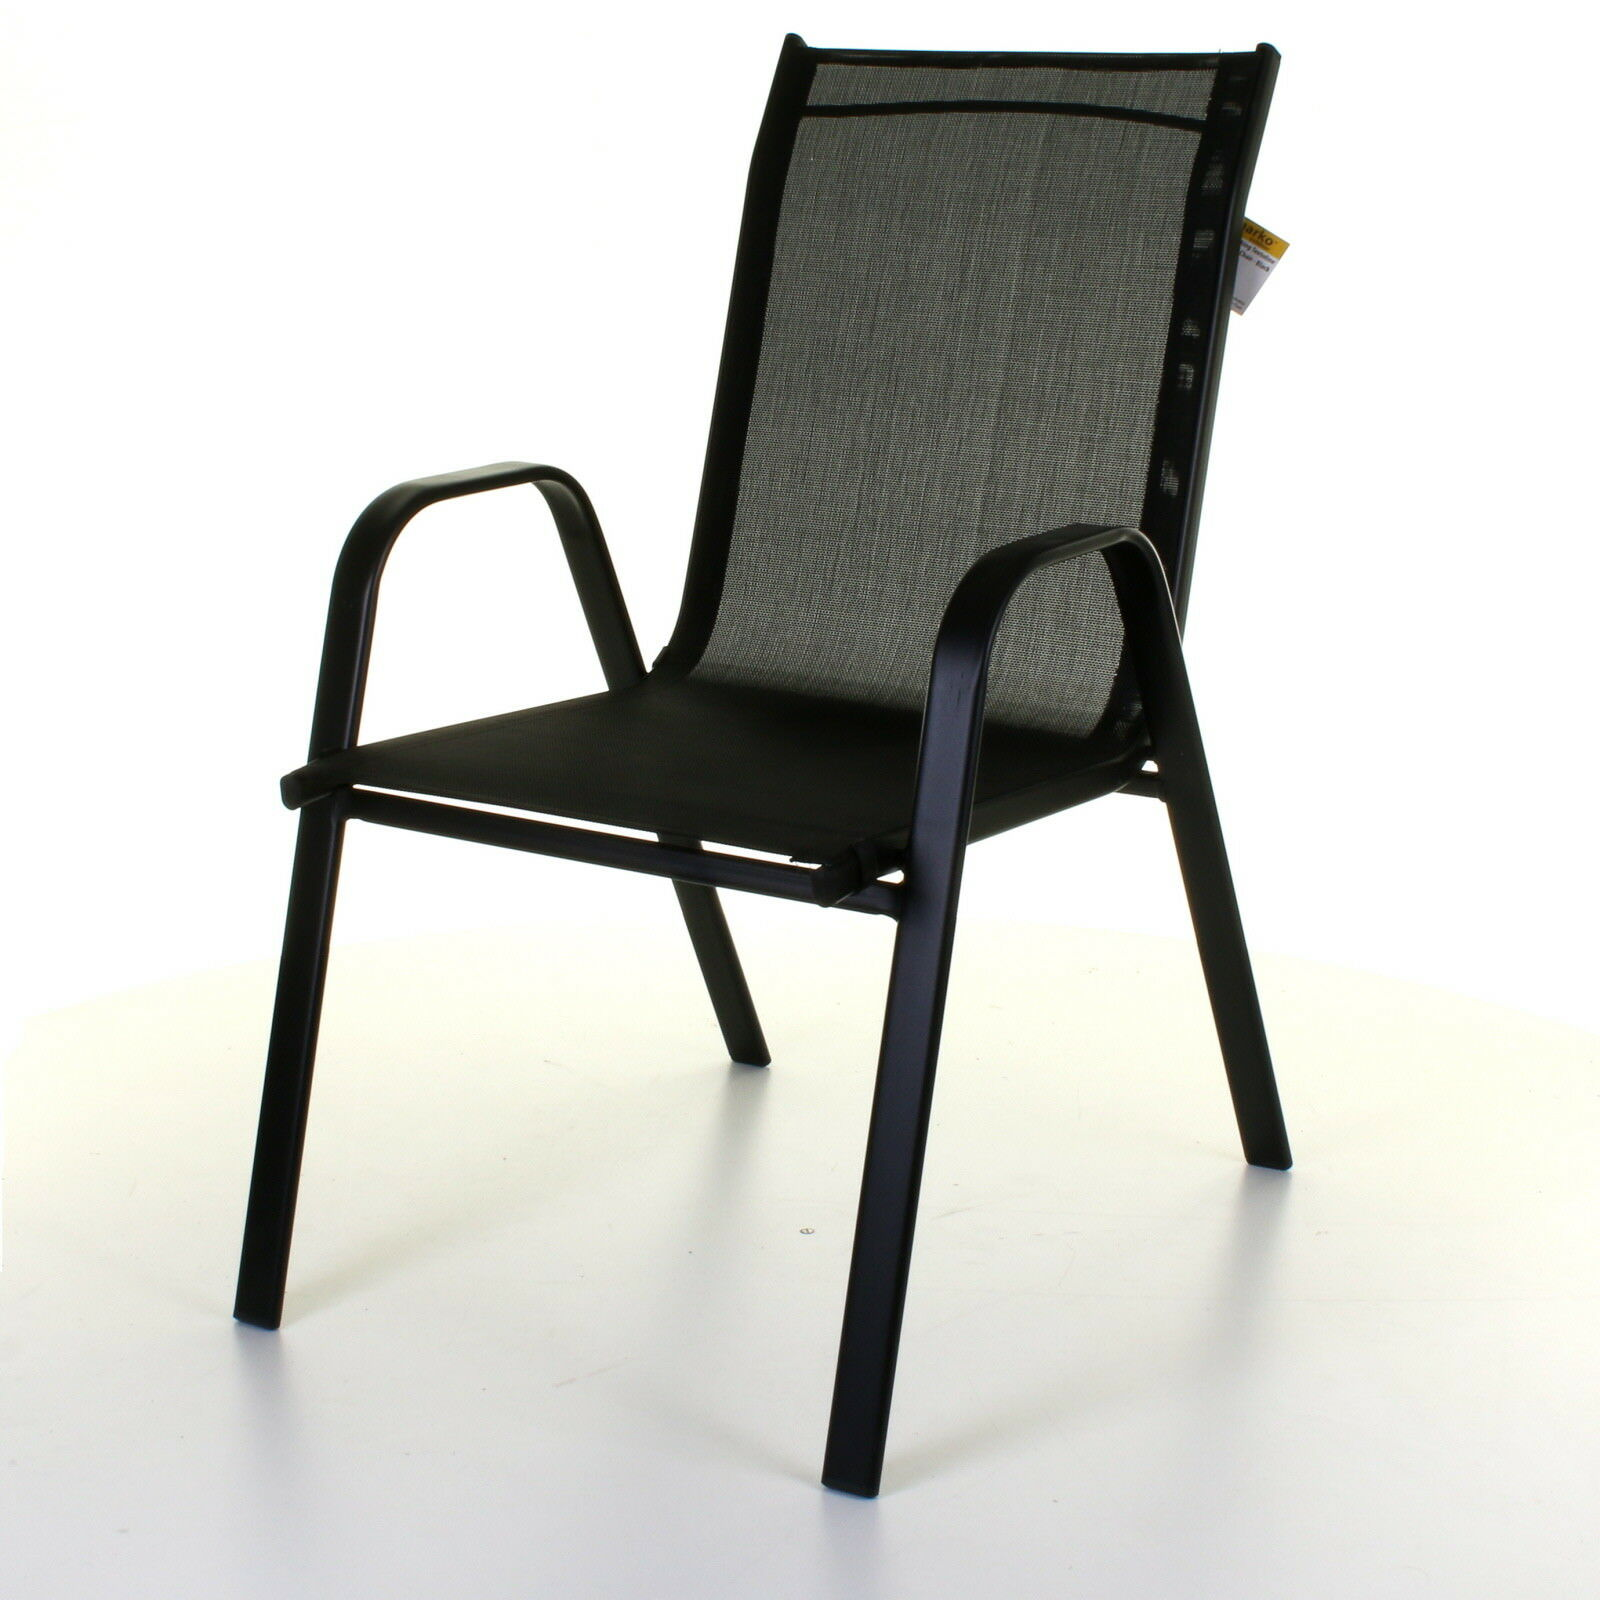 bistro table and chairs indoor hanging chair with stand debenhams black textoline garden furniture patio